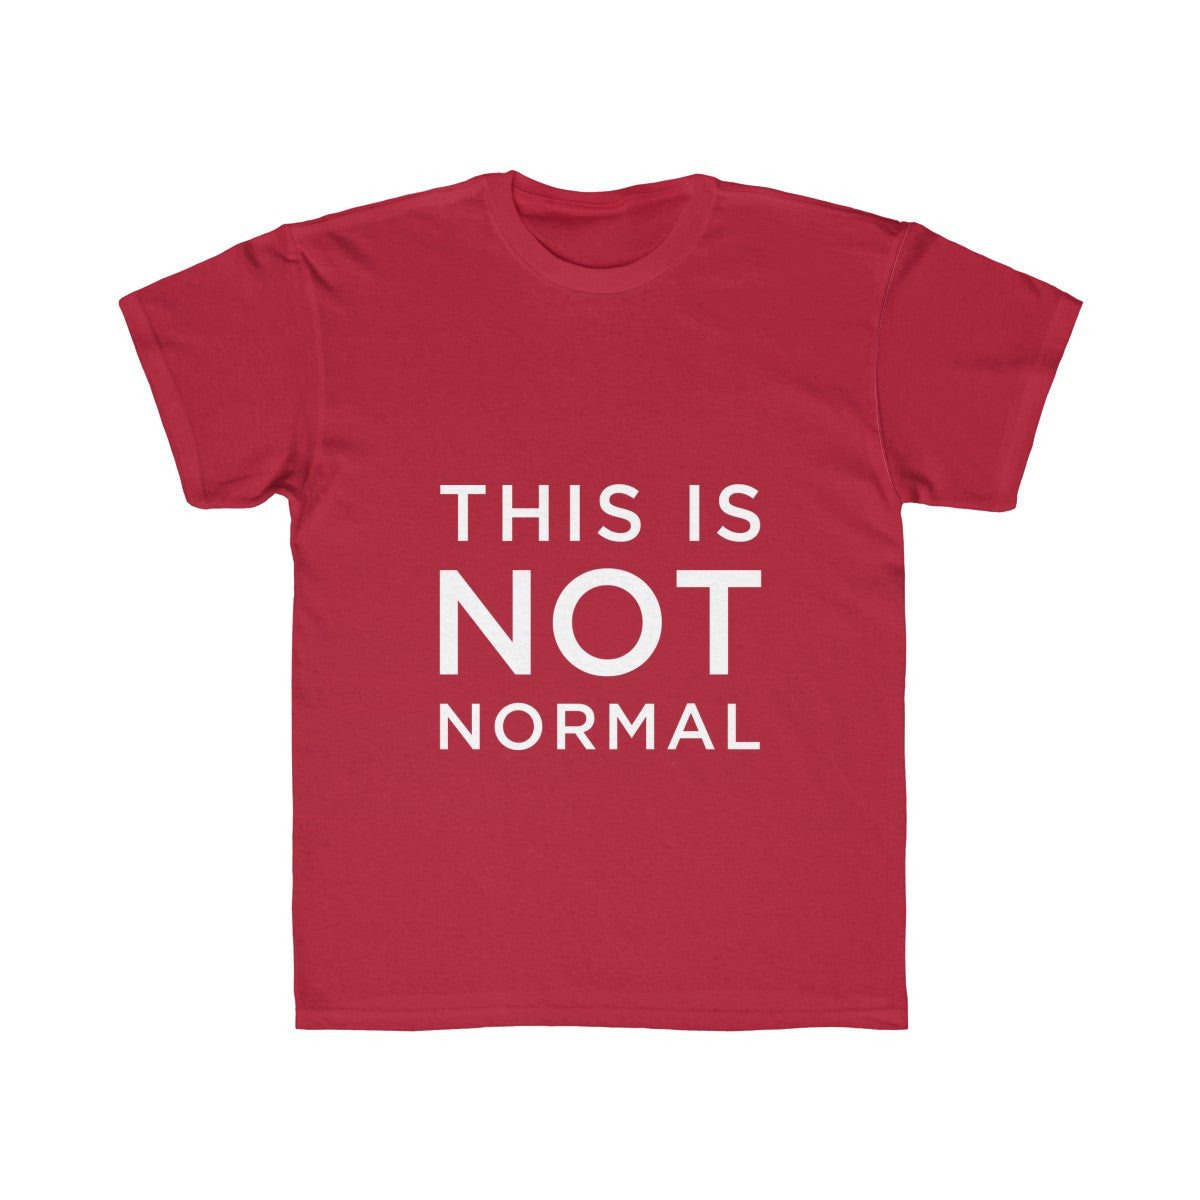 This is Not Normal Kids Regular Fit Tee